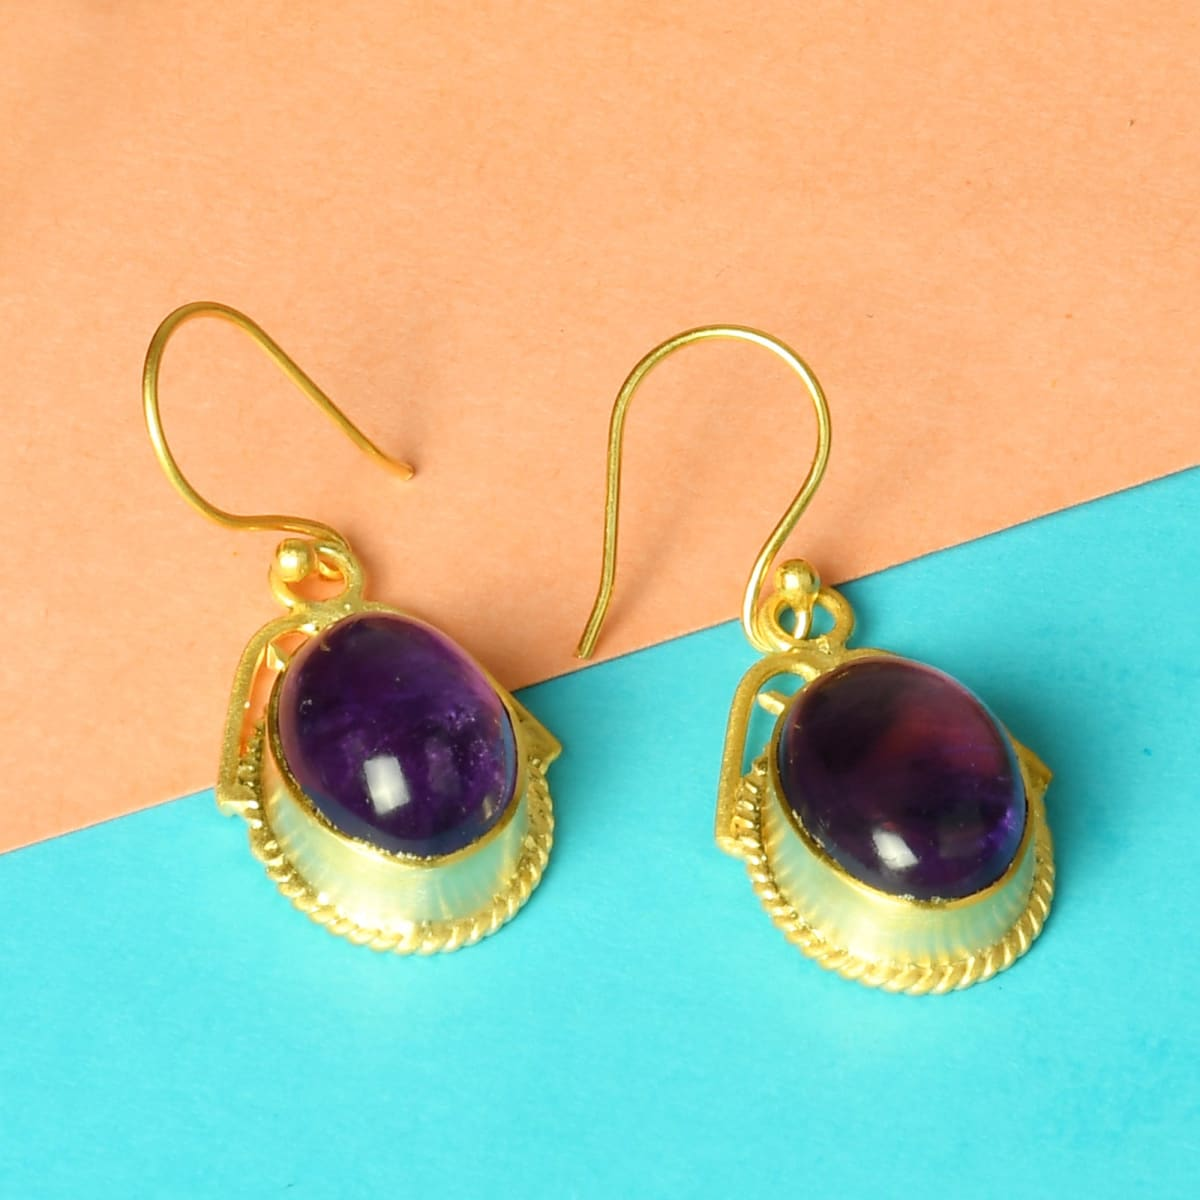 Artisan Handcrafted Purple Amethyst Gemstone Drop Earrings For Women - by Bhagat Jewels